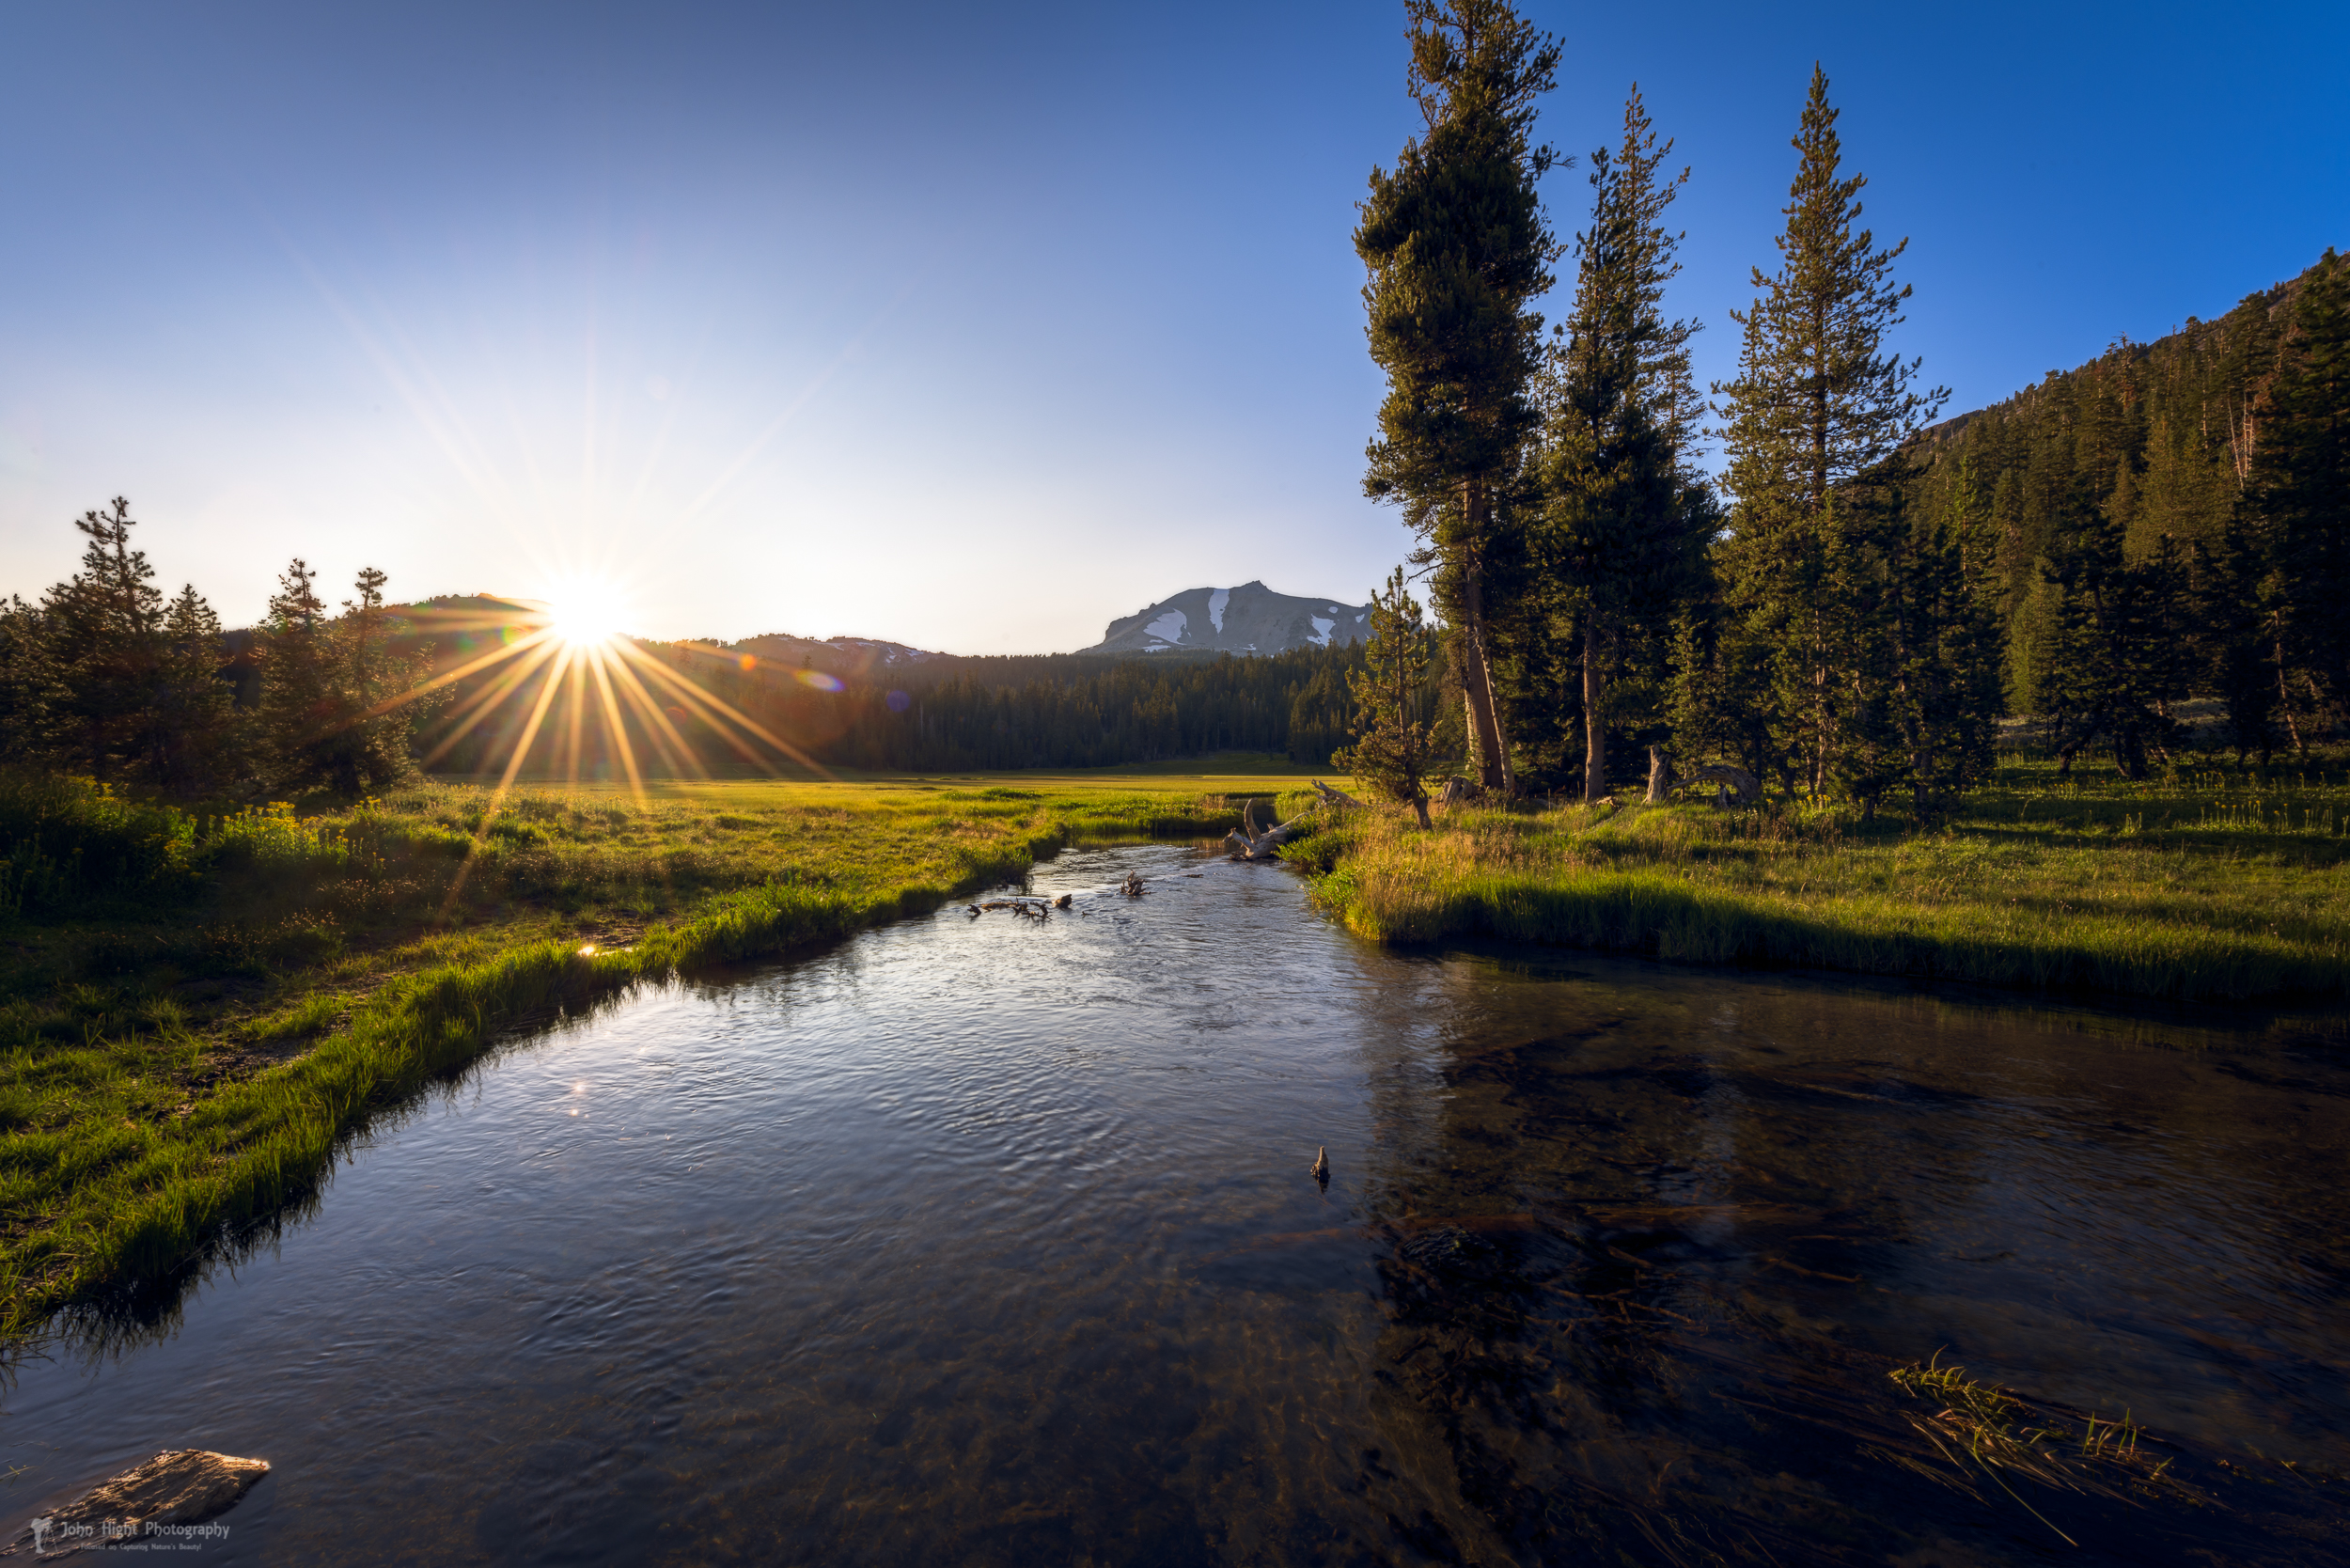 Sunset at Kings Creek in Lassen Volcanic National Park